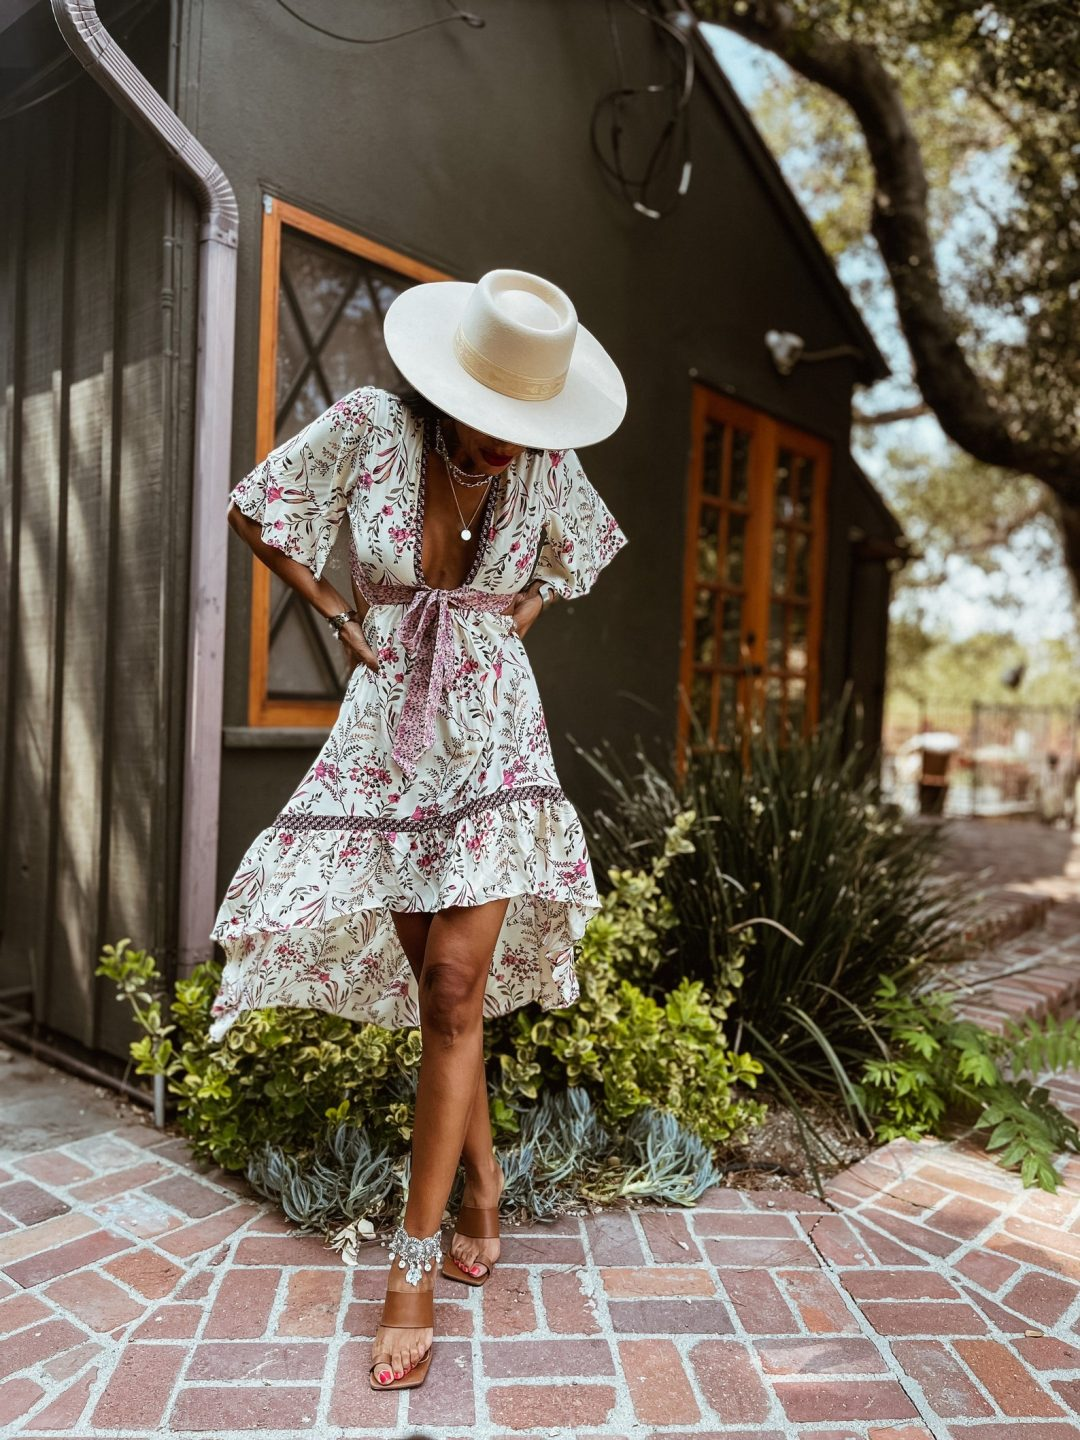 40 Stunning Boho Outfits To Complete Your Hippie Look